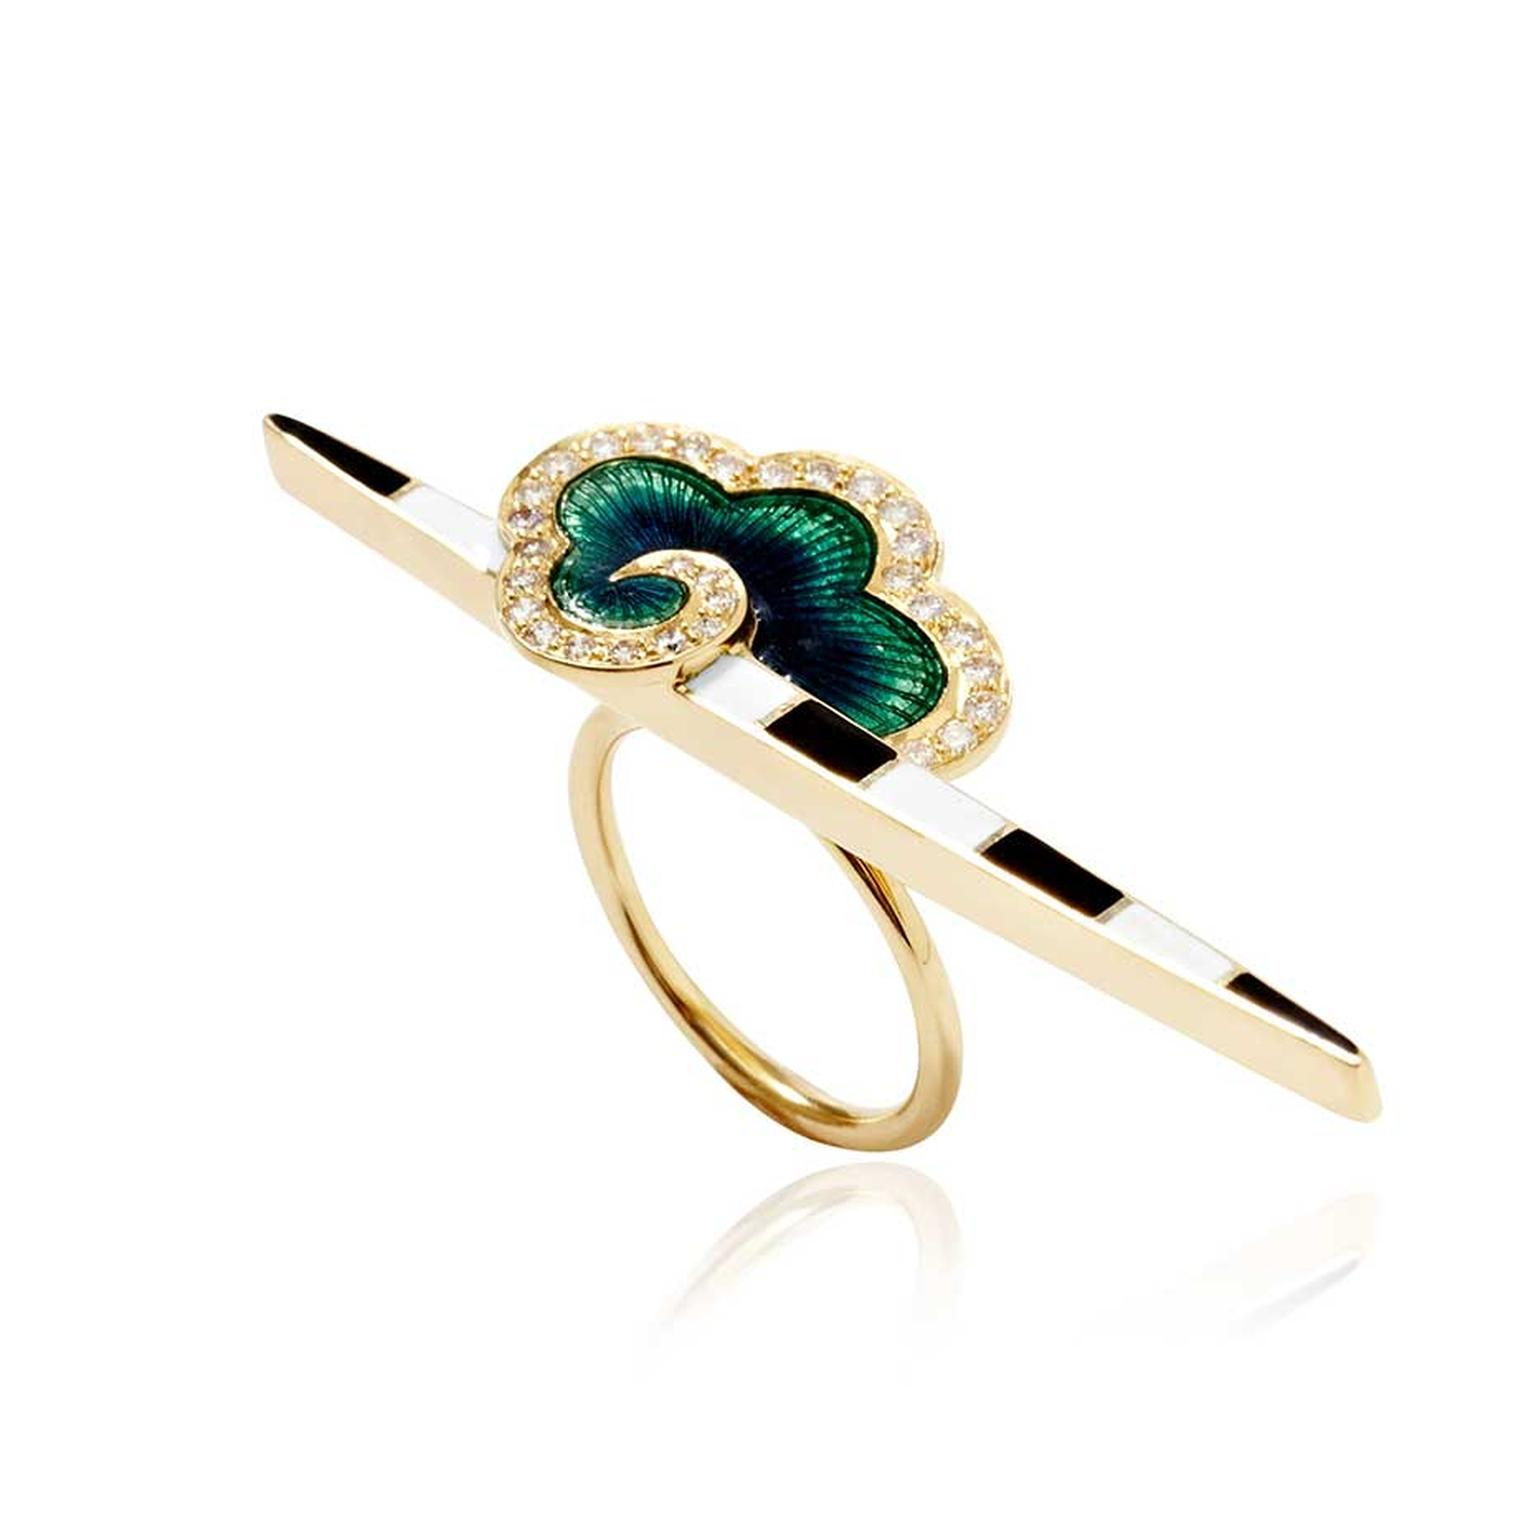 Holly Dyment Cloud Bar ring in yellow gold with black and white enamel stripes and an emerald green cloud surrounded by white diamonds.